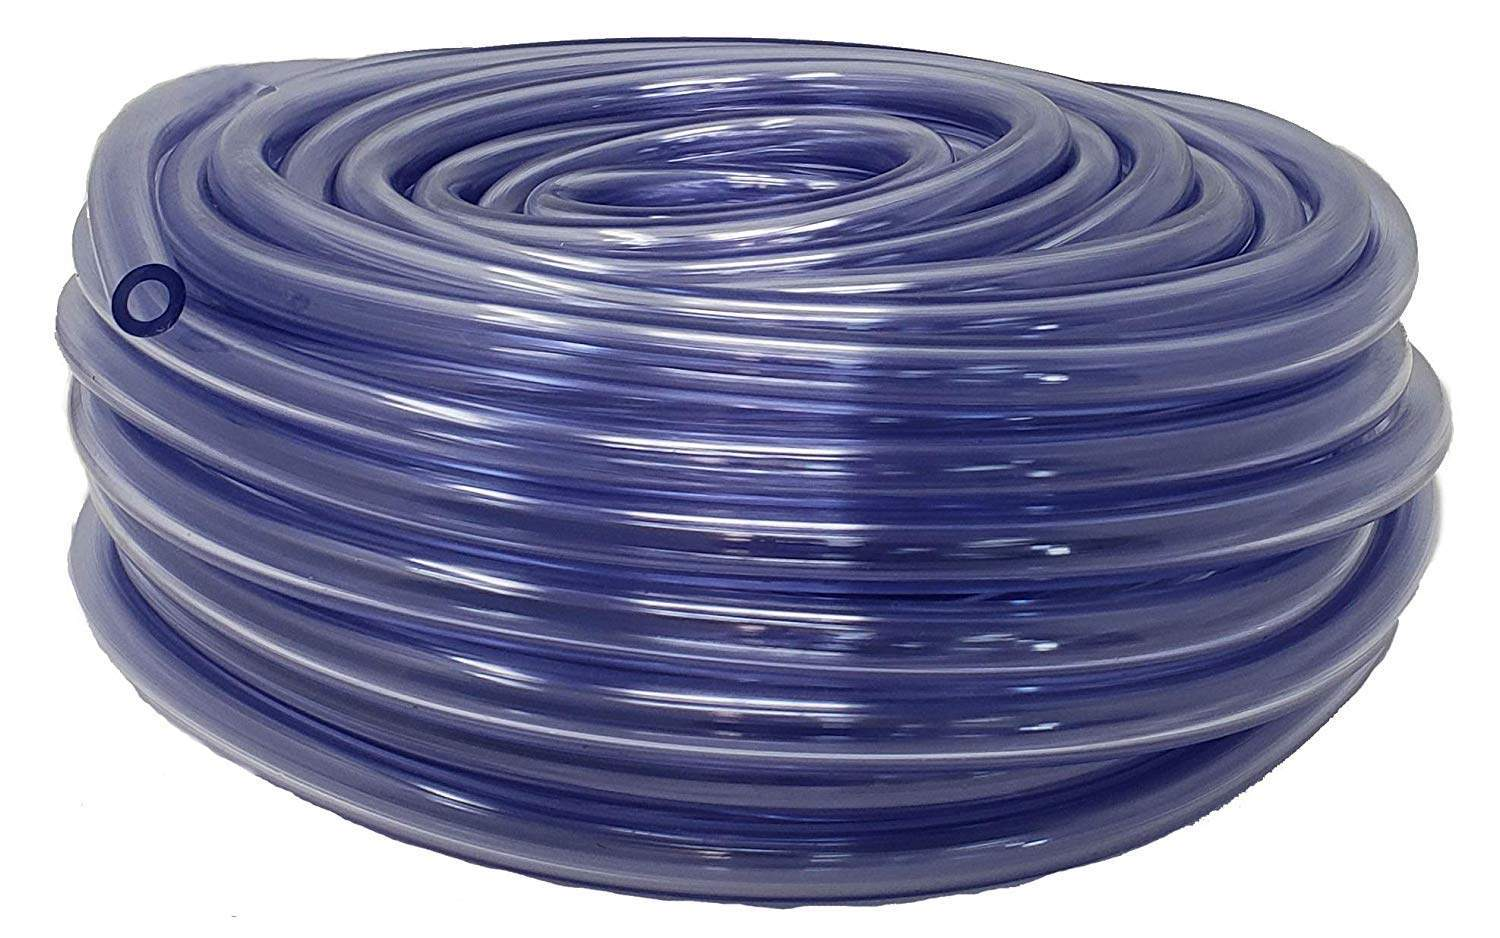 beet garten inspirierend 5 16 inch id 9 16 inch od tubing 100 ft coc2b2 gas hose for homebrewing beer line kegerator draft systems air hose crystal clear vinyl tubing of beet garten